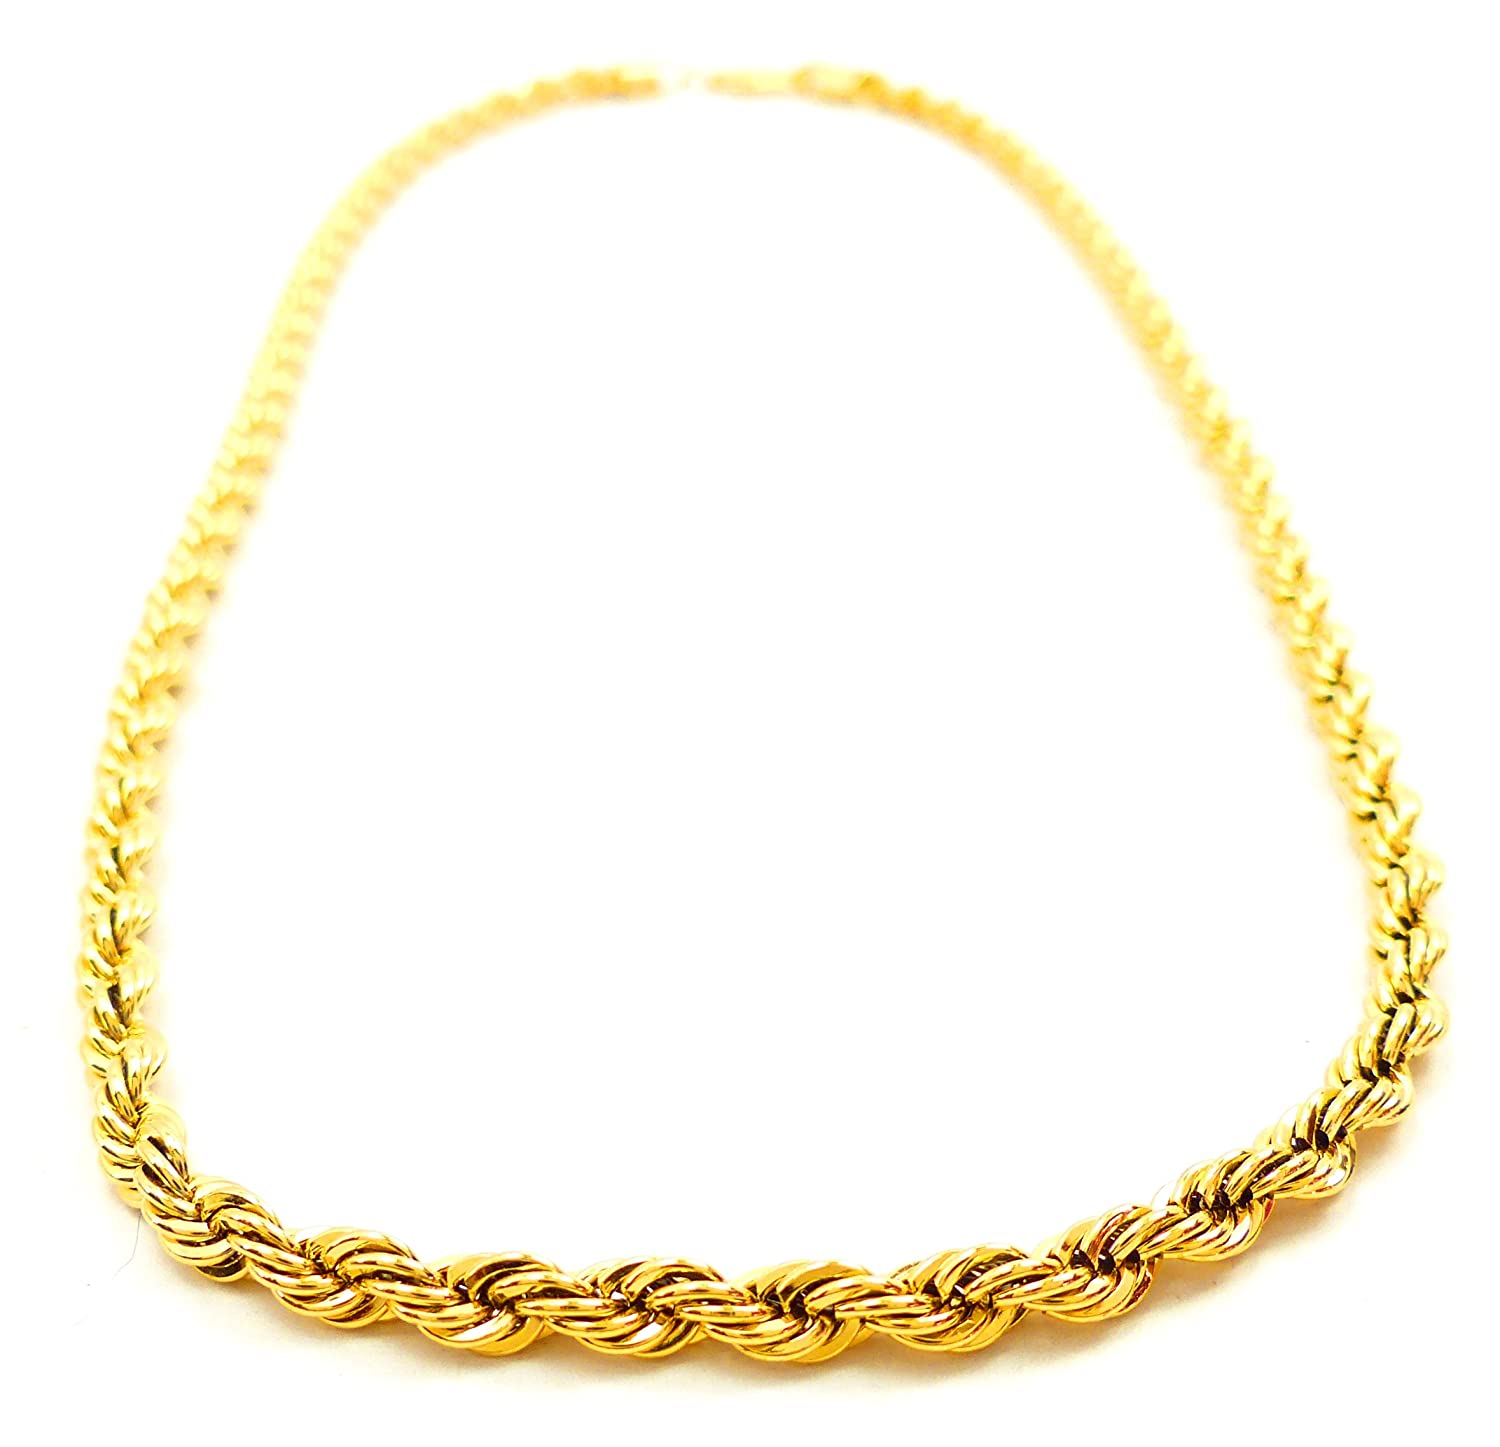 Goldkette gangster damen  hochwertige Goldkette edle HipHop Gangster Gold Chain Karneval ...